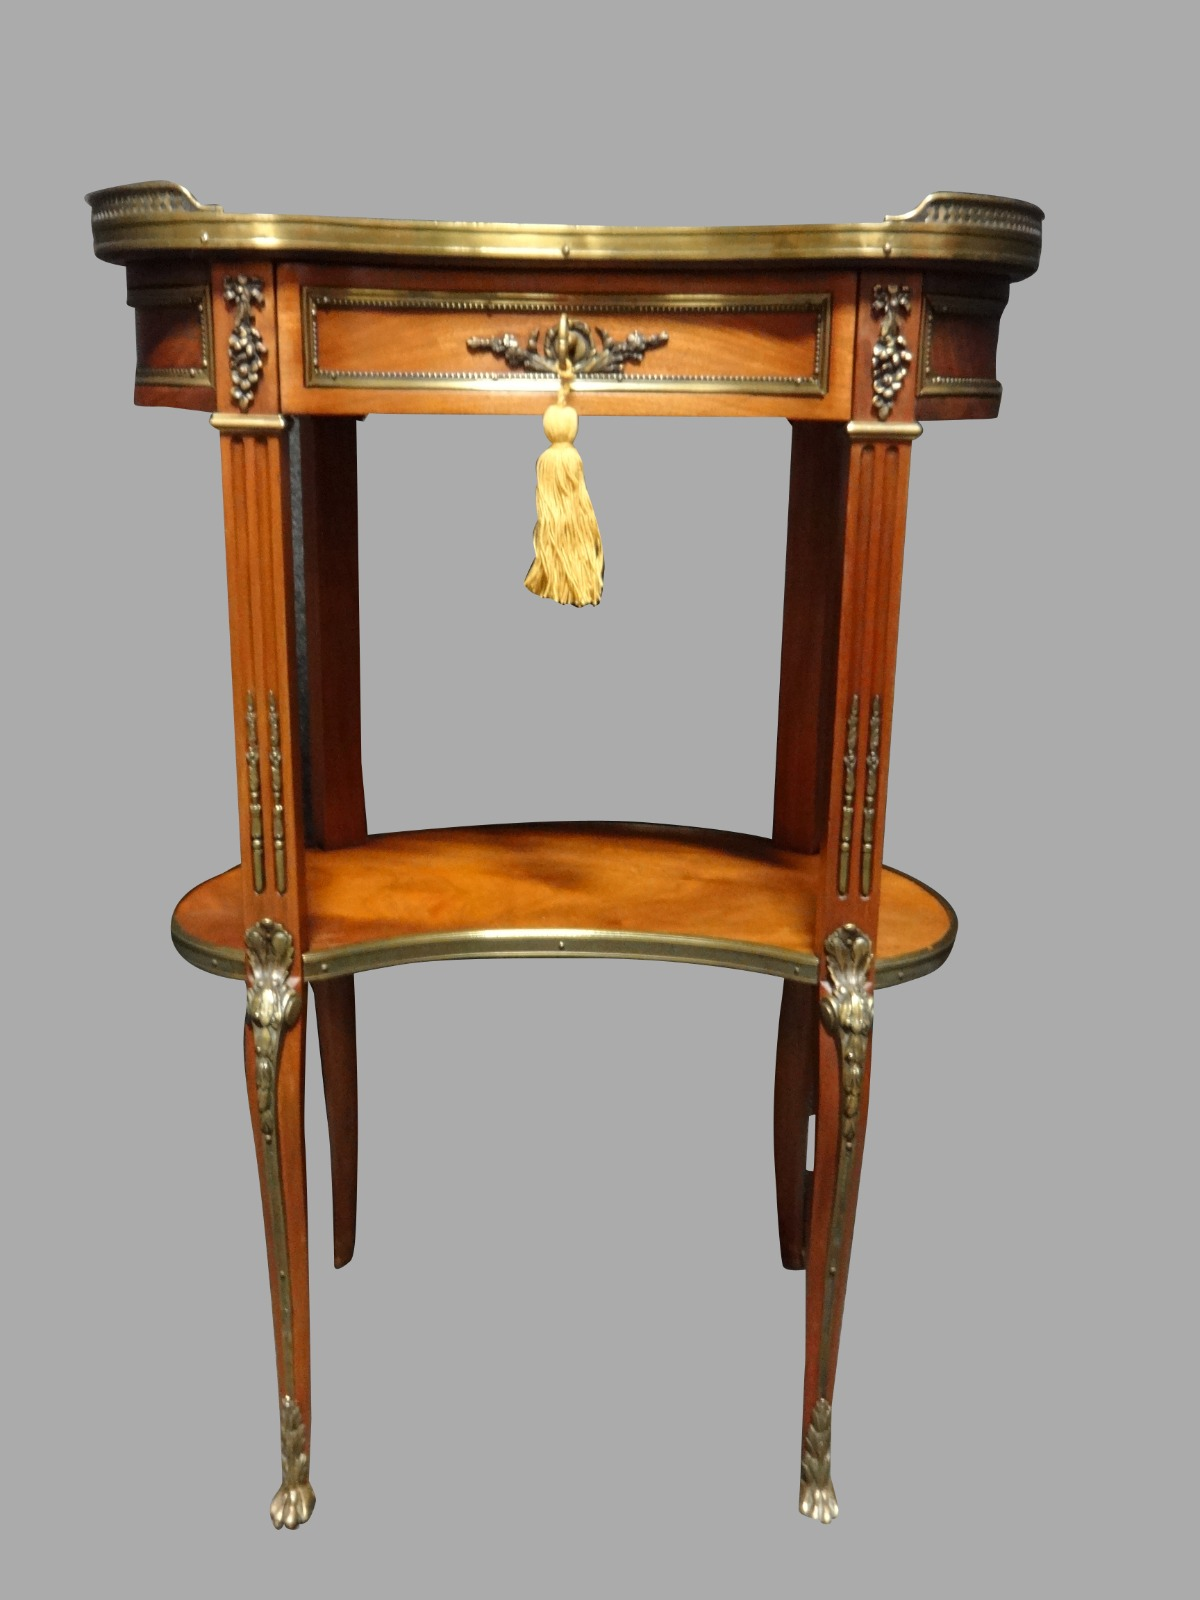 Very Good French Mahogany & Marble Side Table (1 of 1)